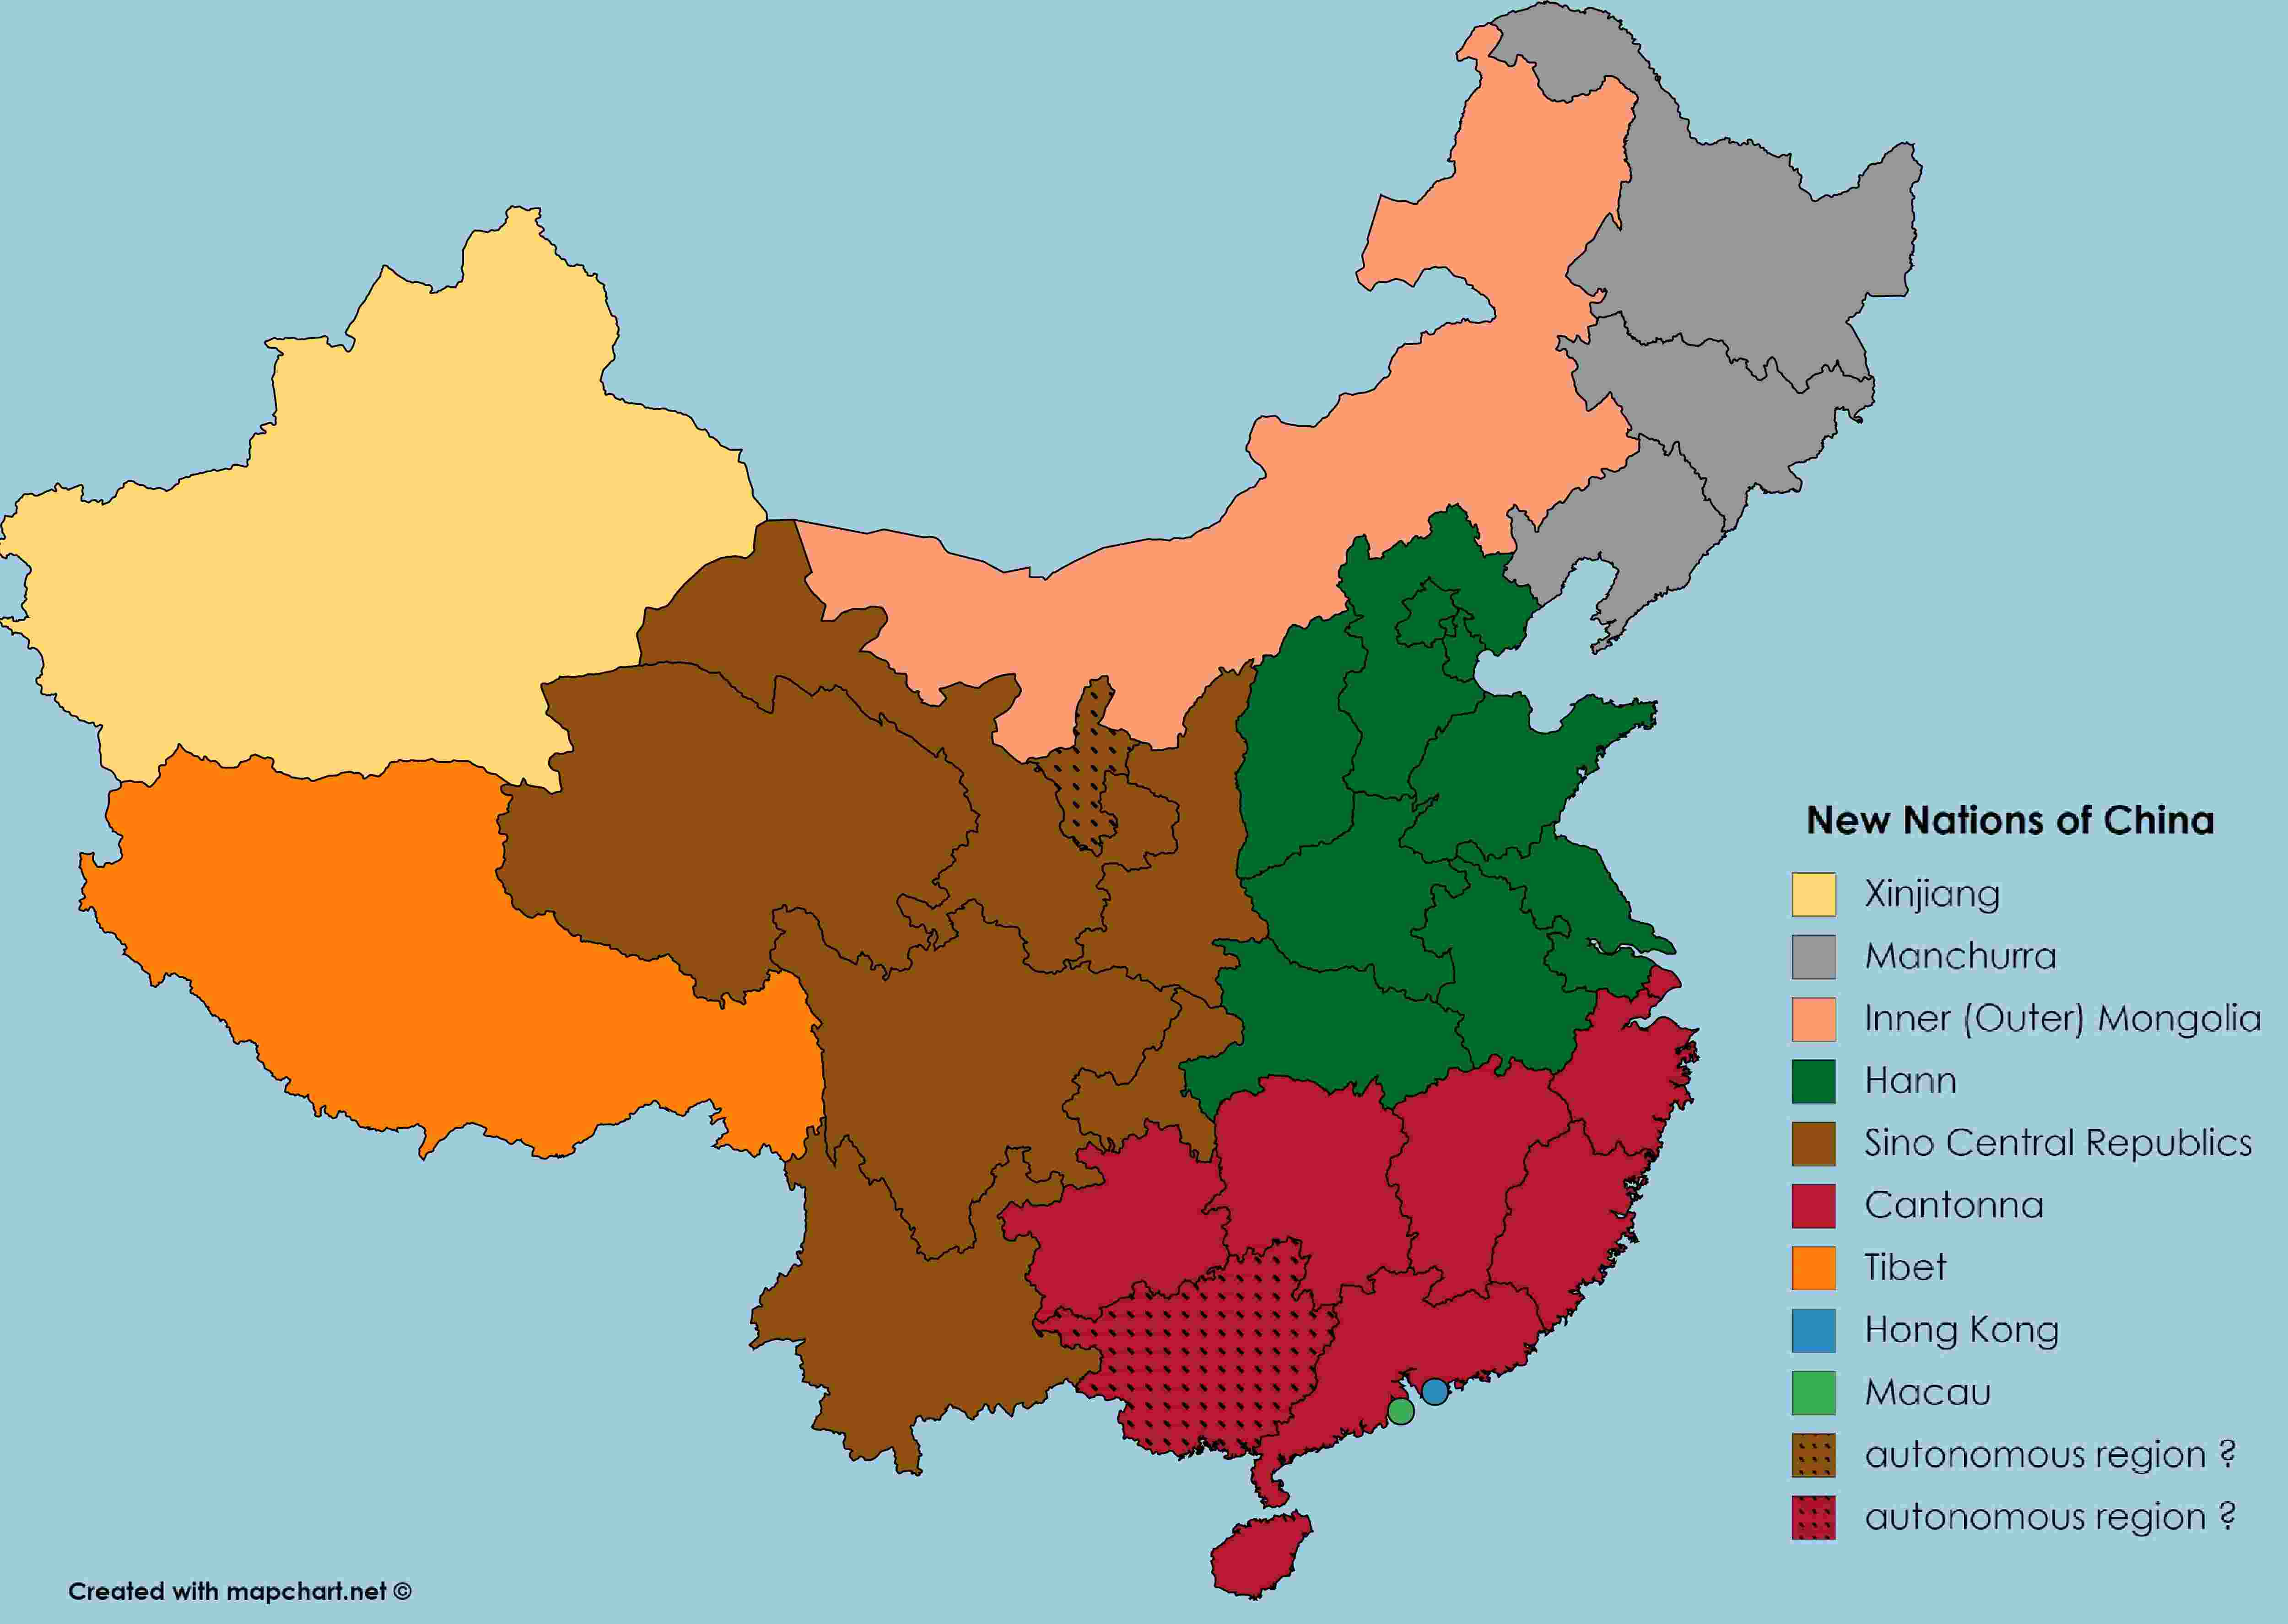 'New Nations of China' Map with color key